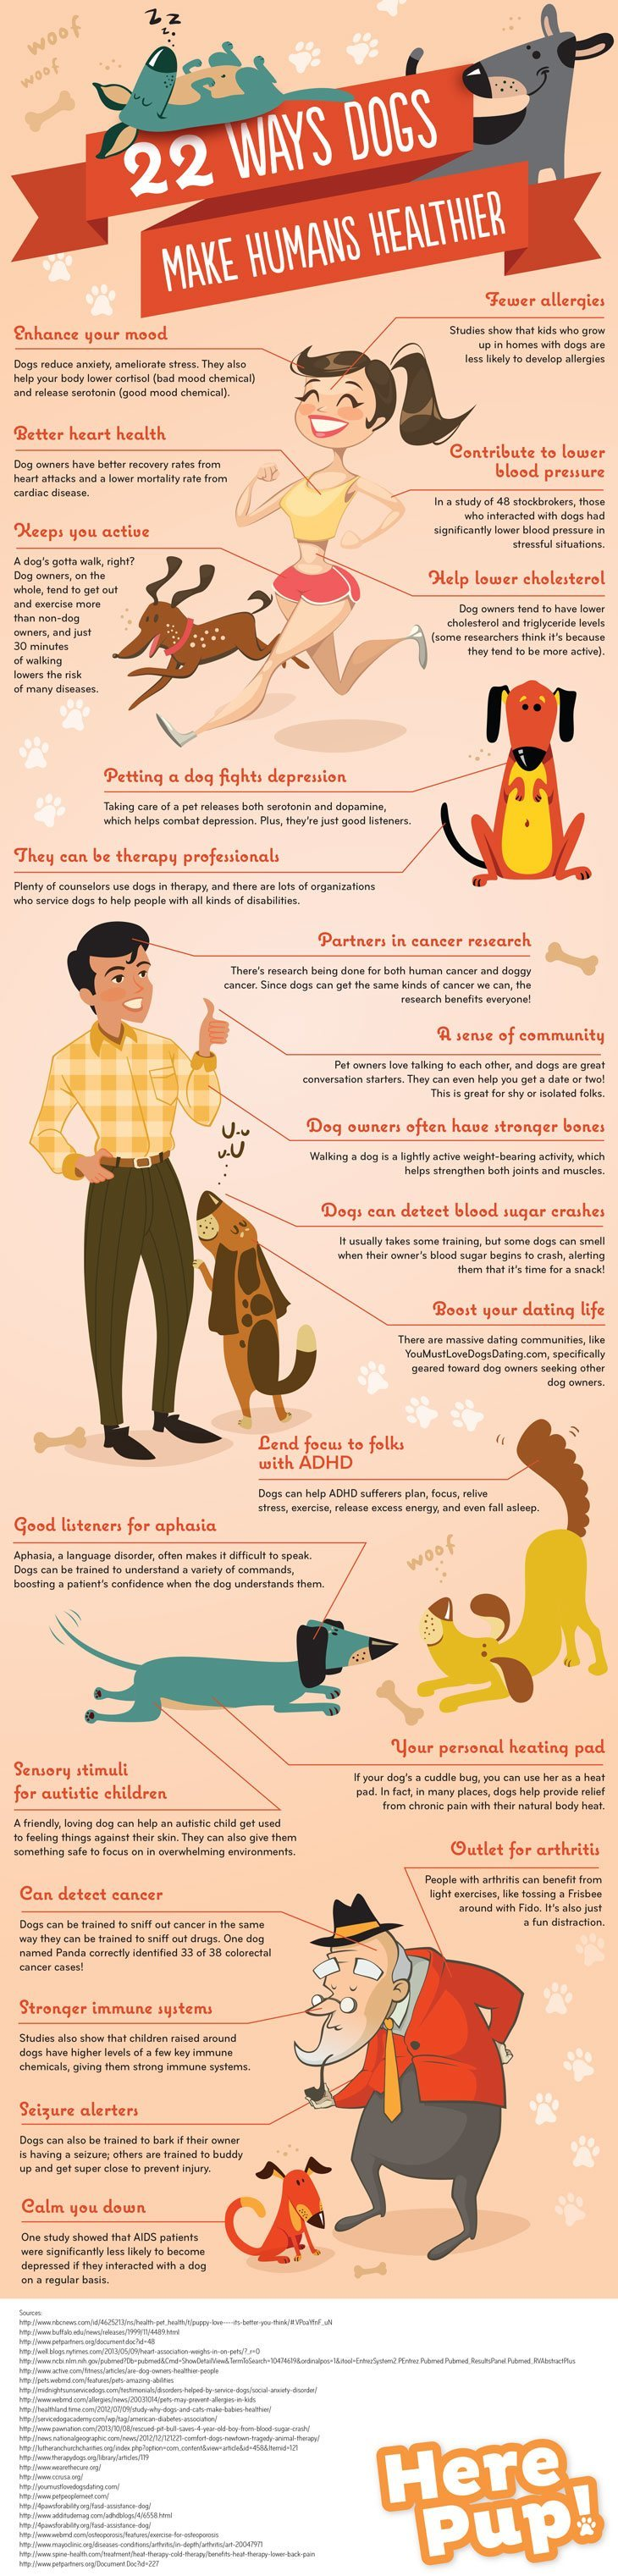 Dogs make humans healthier